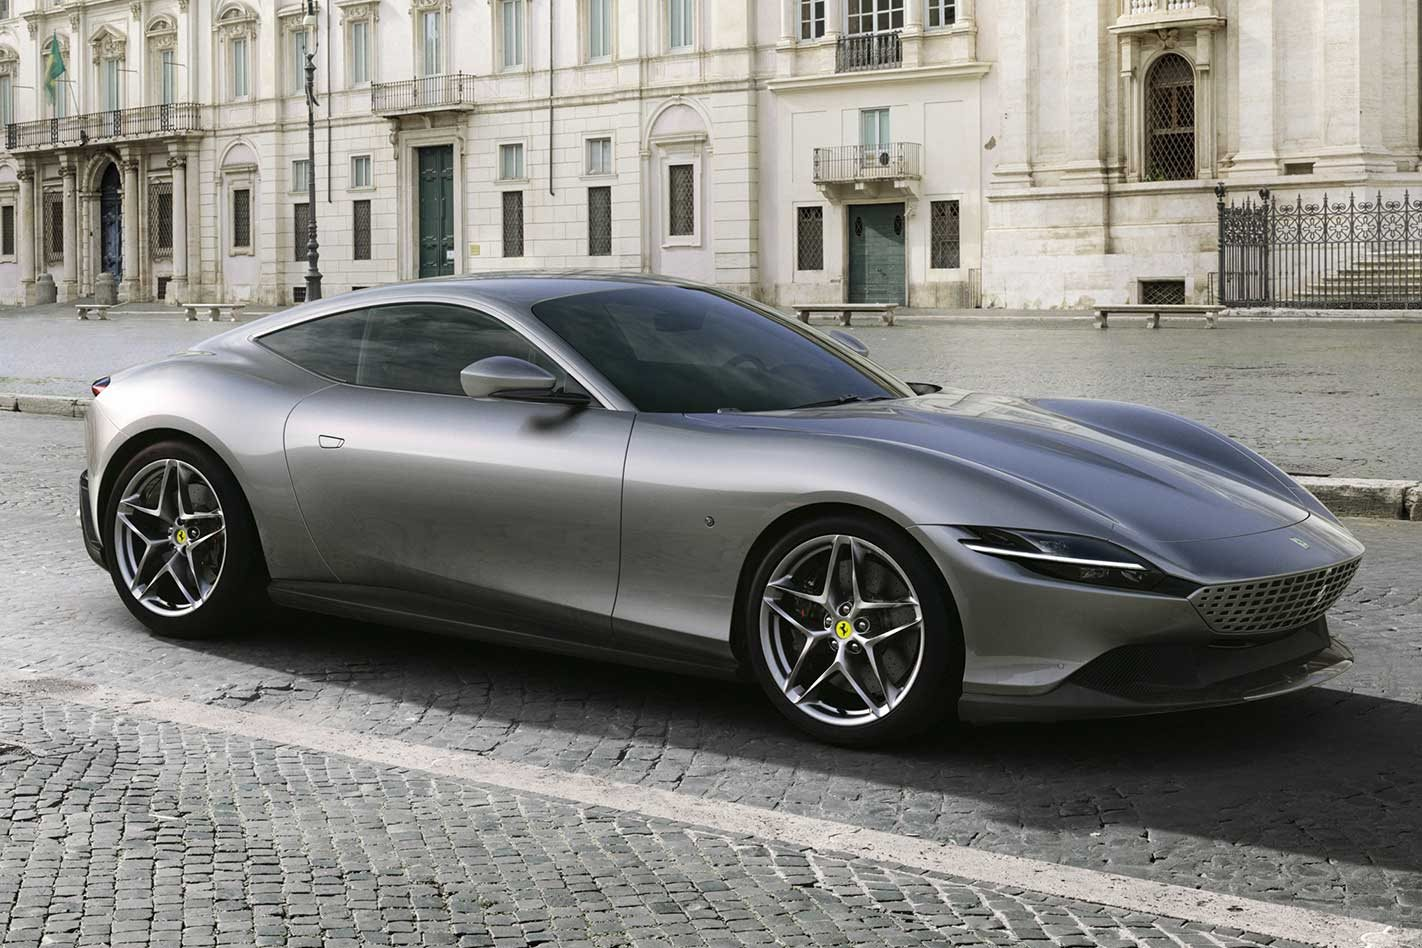 Ferrari Roma is the new 456kW Prancing Horse